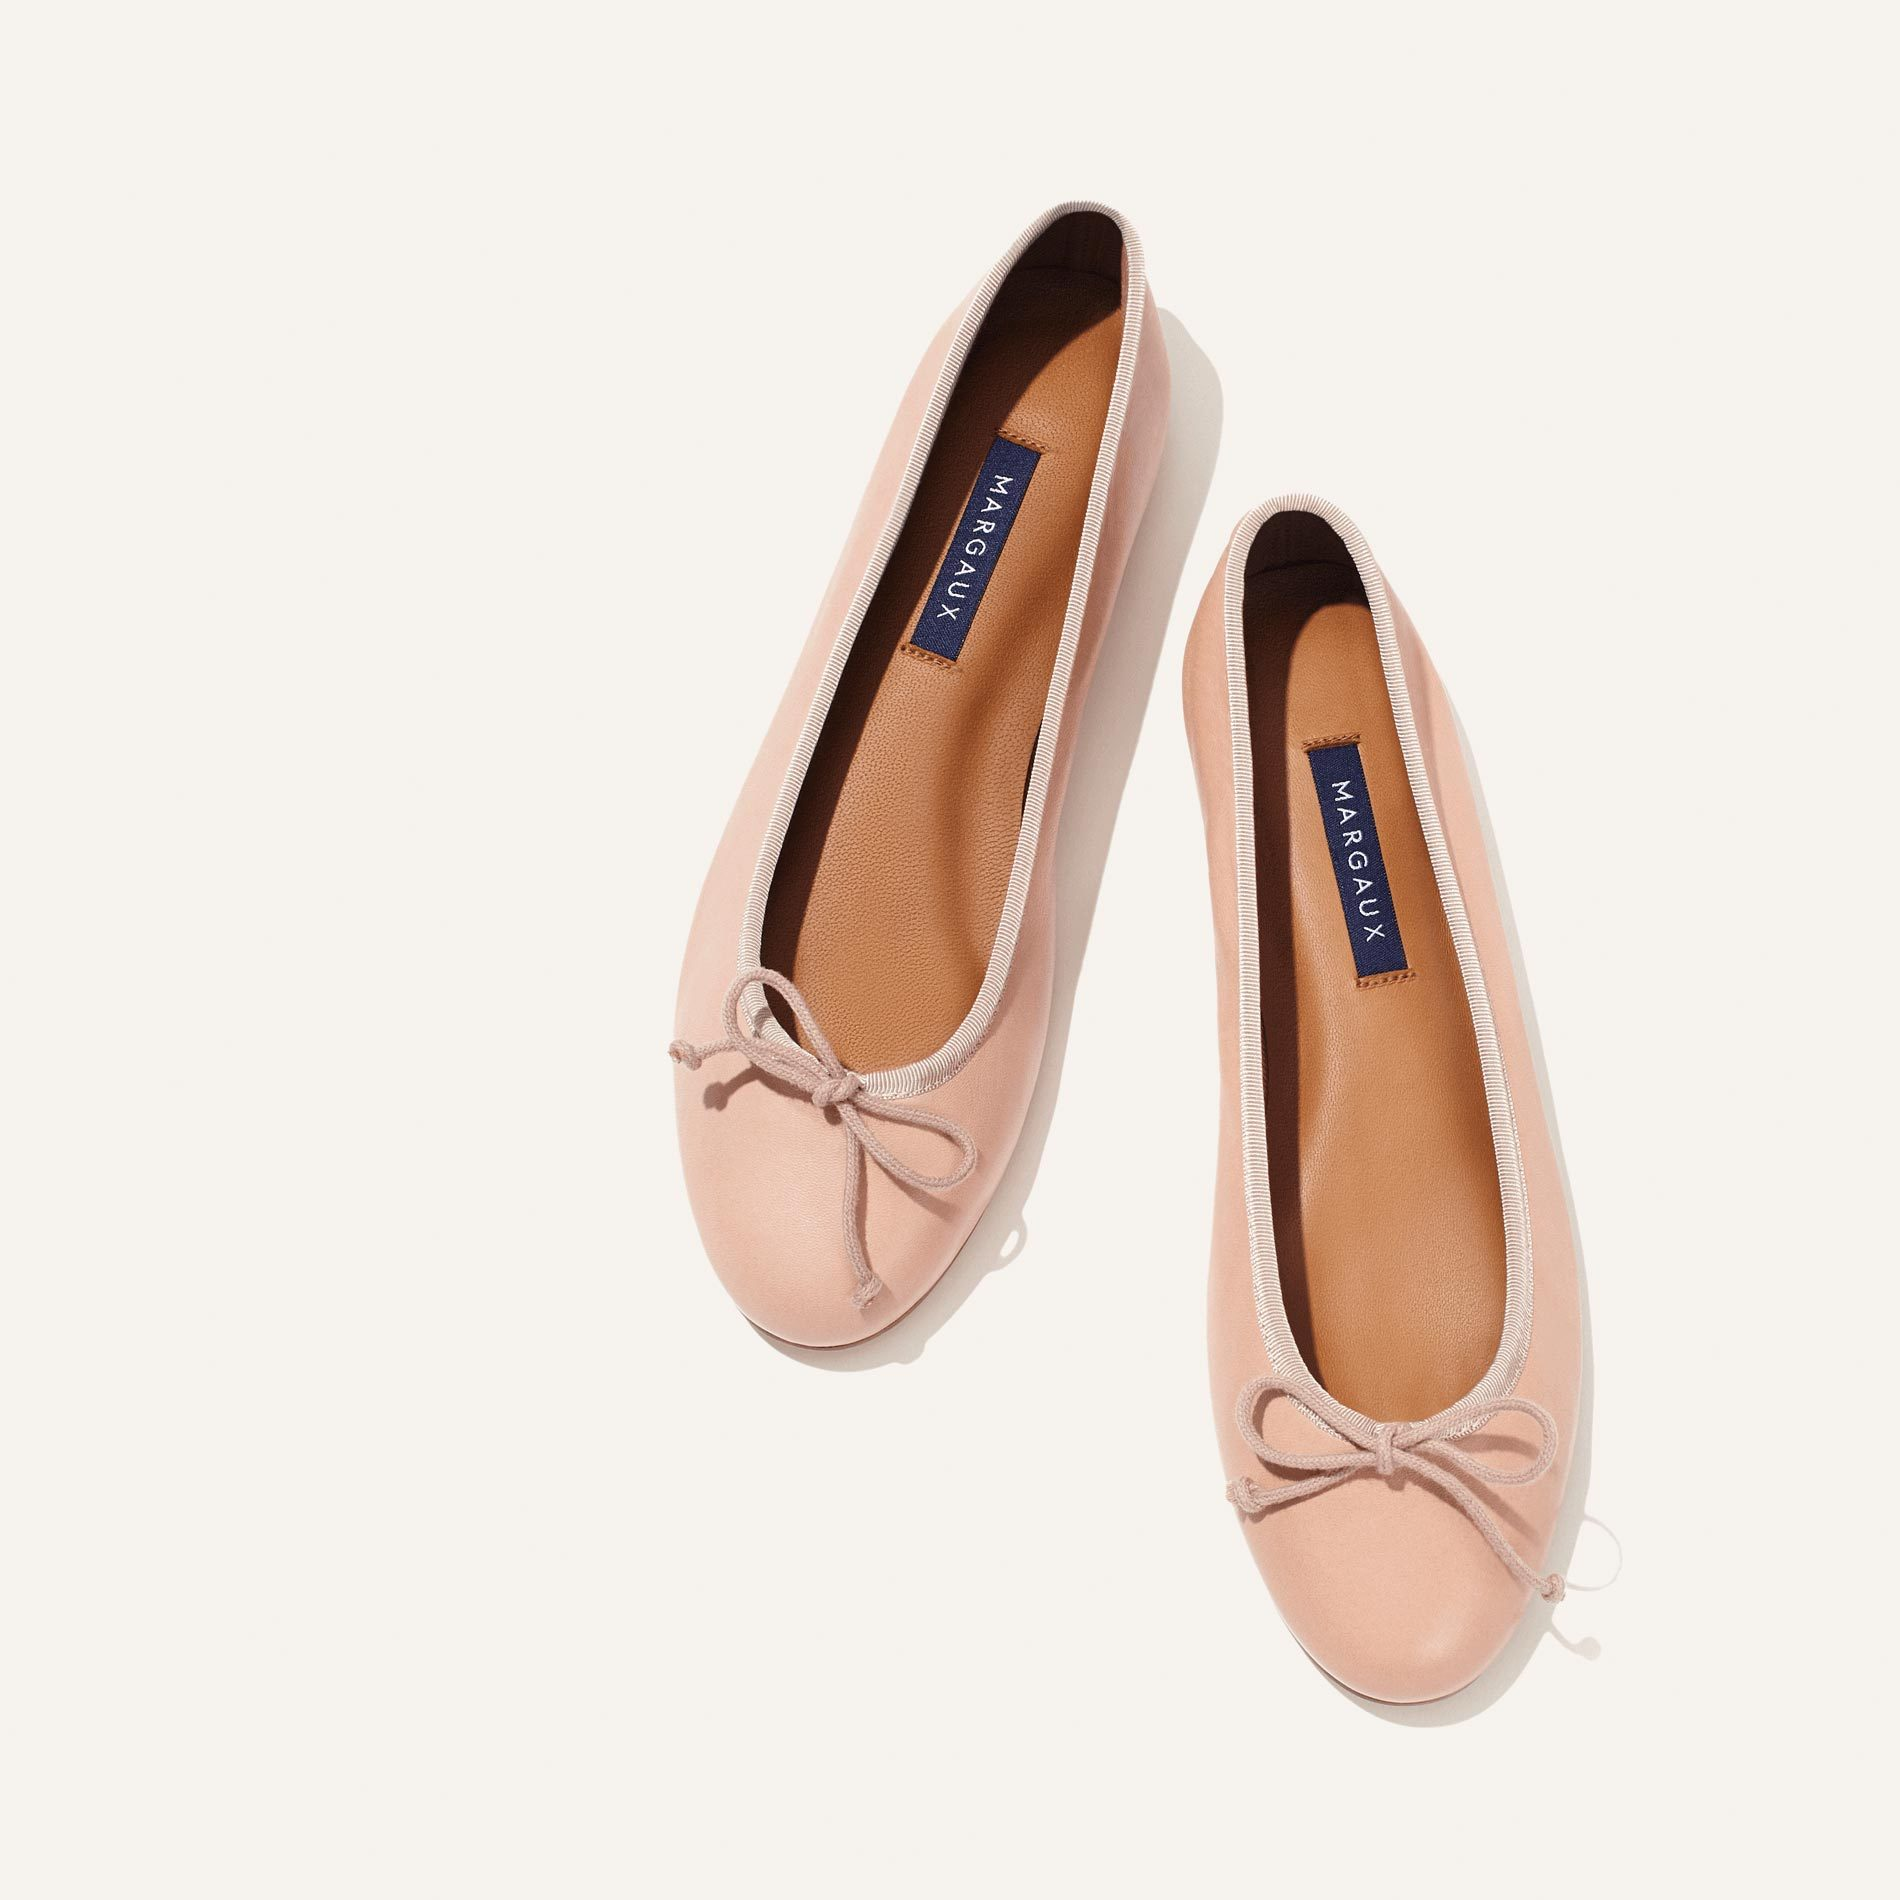 Margaux The Demi French Ballet Flat, favorite weekly finds